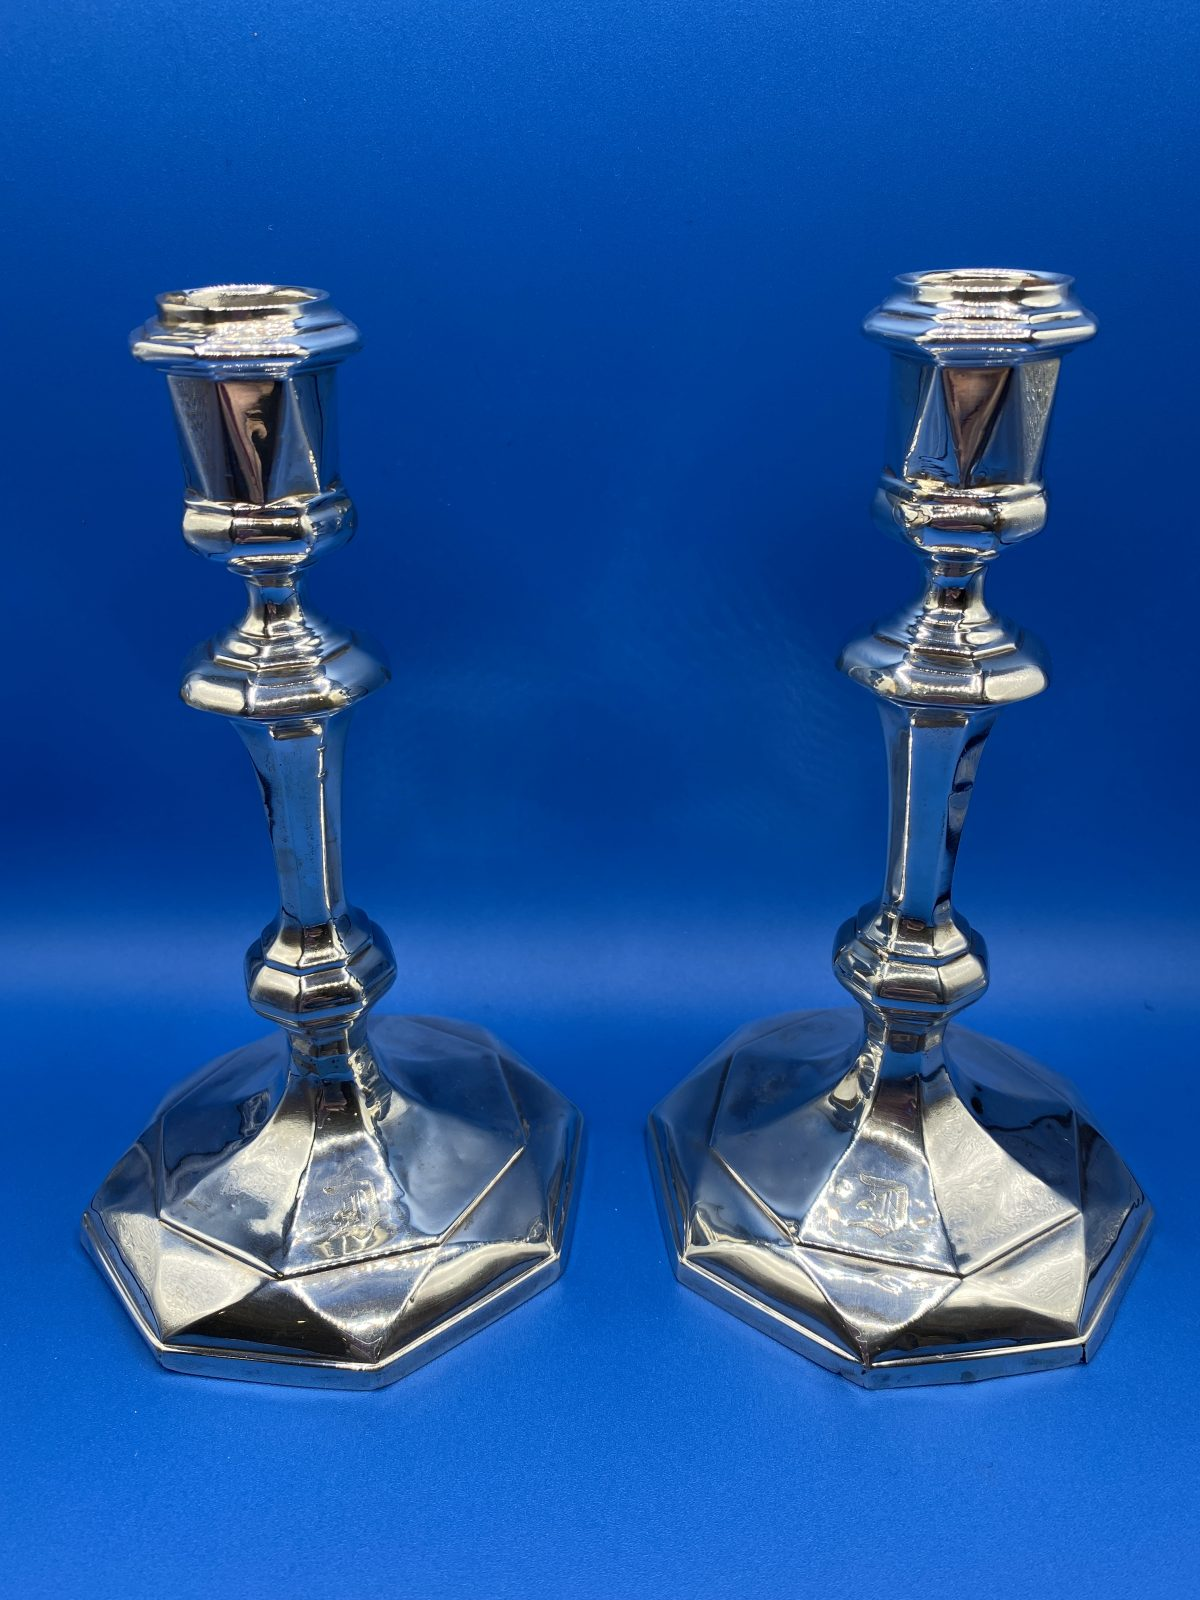 G1 - A Pair of Silver Candlesticks with weighted bases, Sheffield 1920, engraved with the letter E.  £225